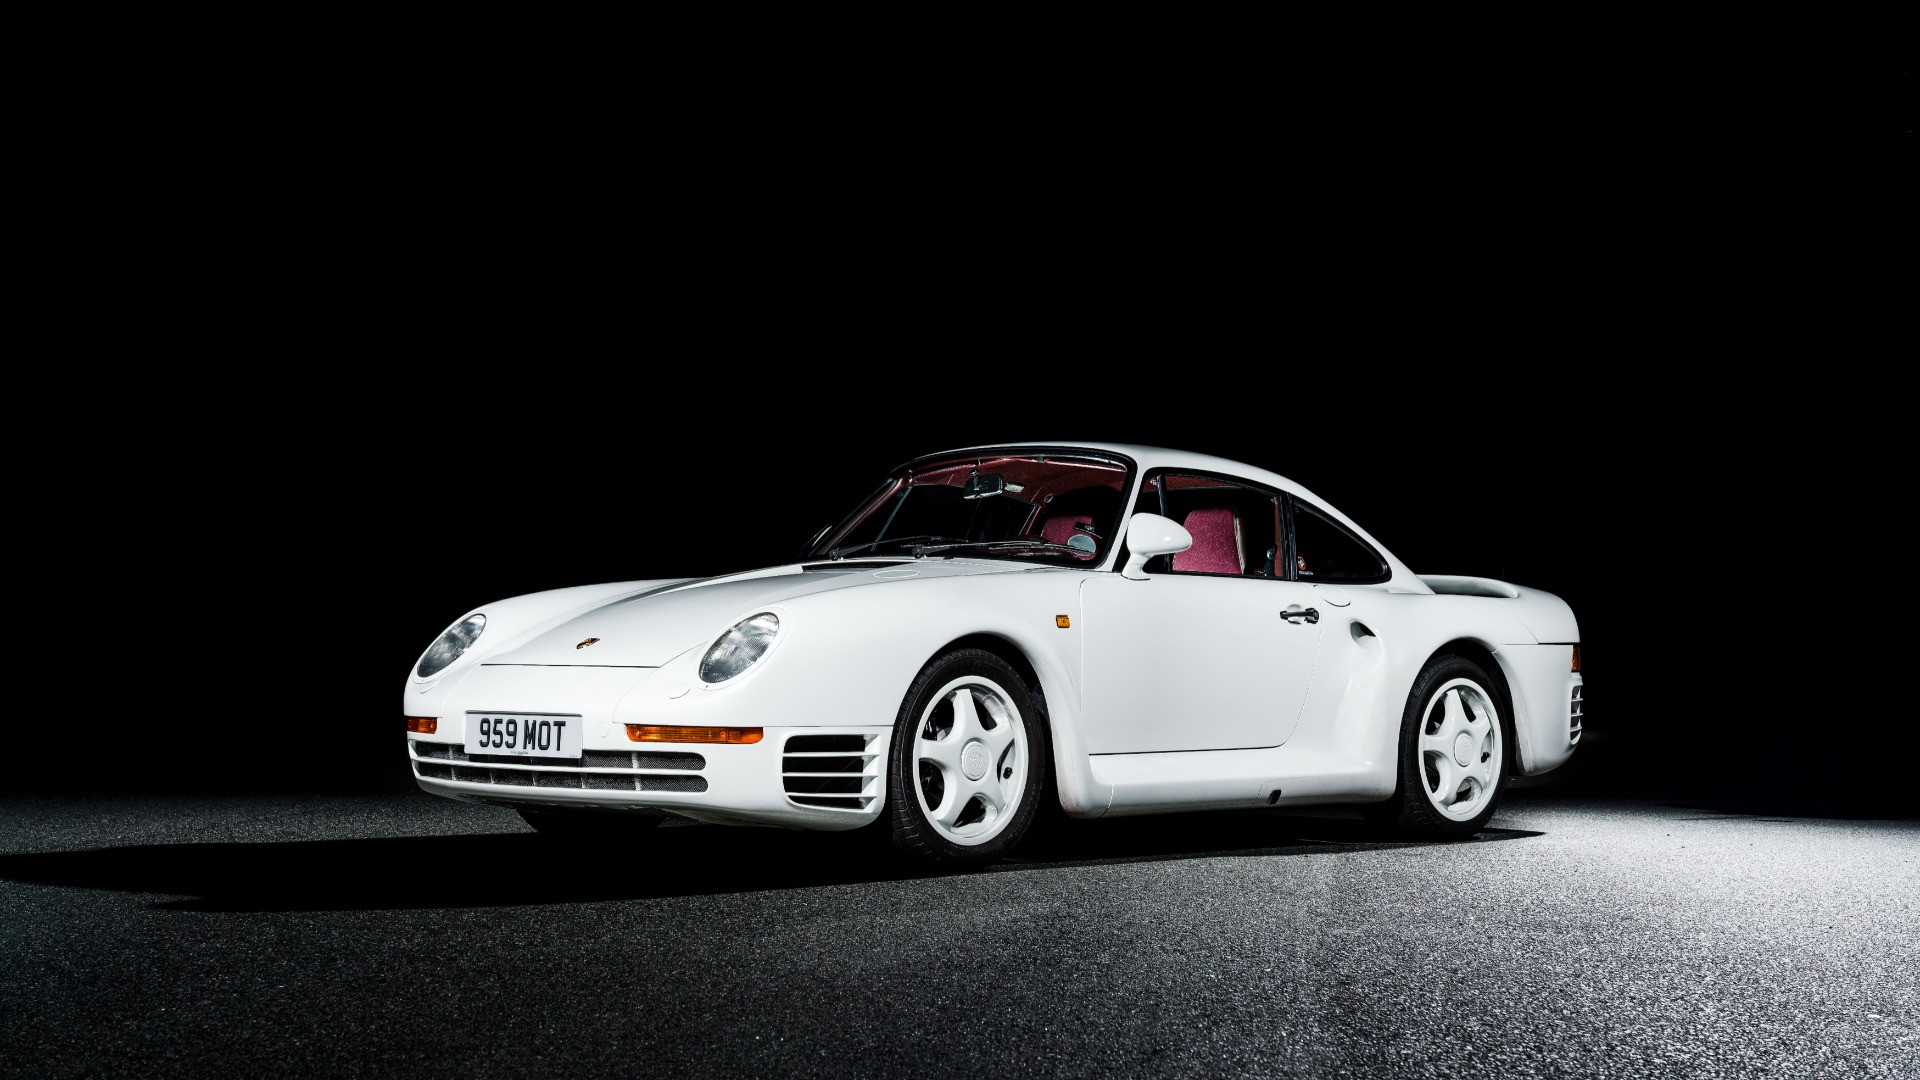 Used 1988 Porsche 959 KOMFORT COUPE / AWD / 6-SPEED MANUAL / ORIGINAL SUPERCAR for sale $1,399,999 at Formula Imports in Charlotte NC 28227 1